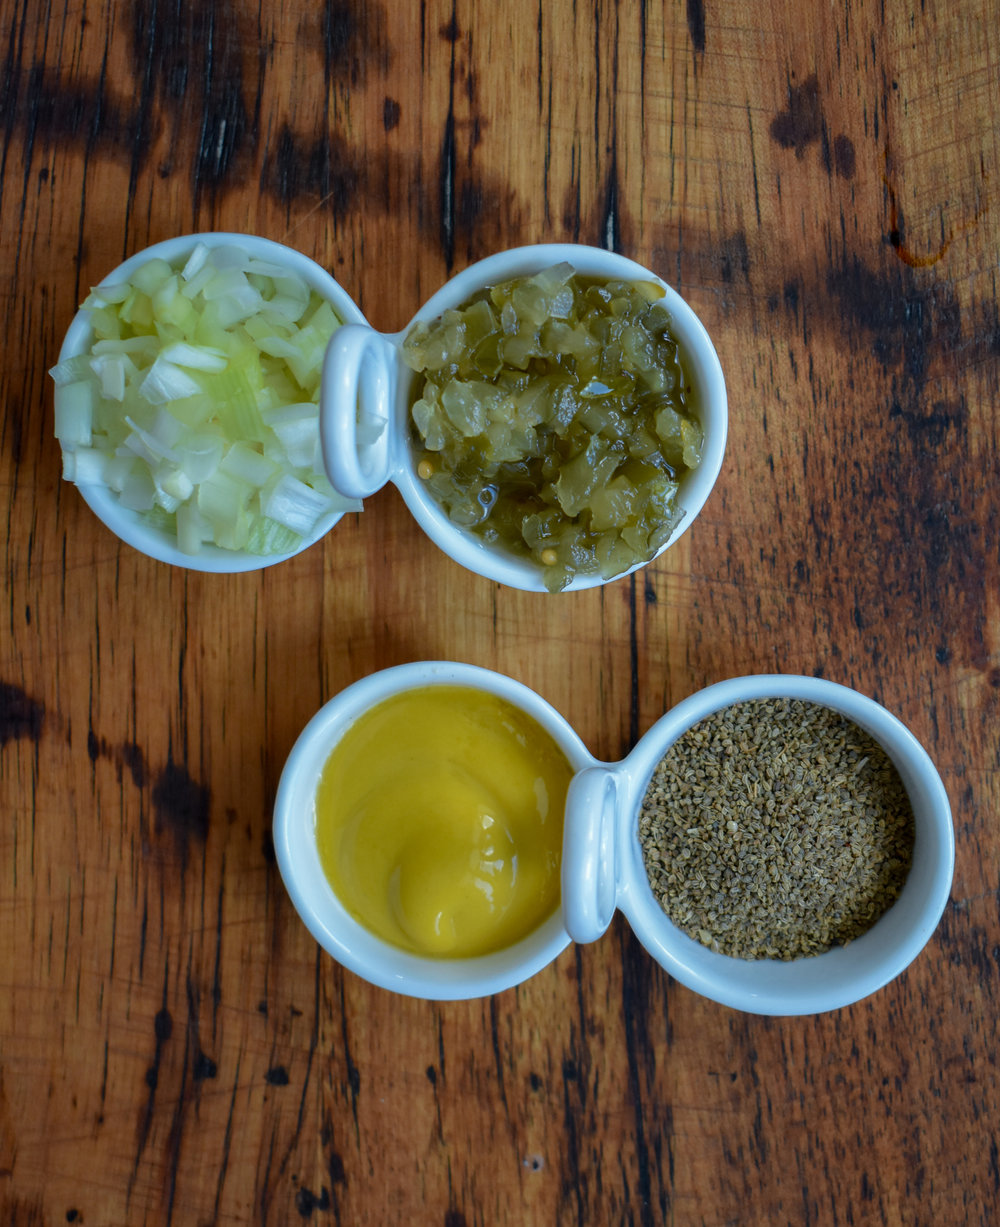 3. Chop and set aside onion, measure relish, and celery seed. I like to put my mustard on from the bottle rather than spread on, so you can get the bottle ready.